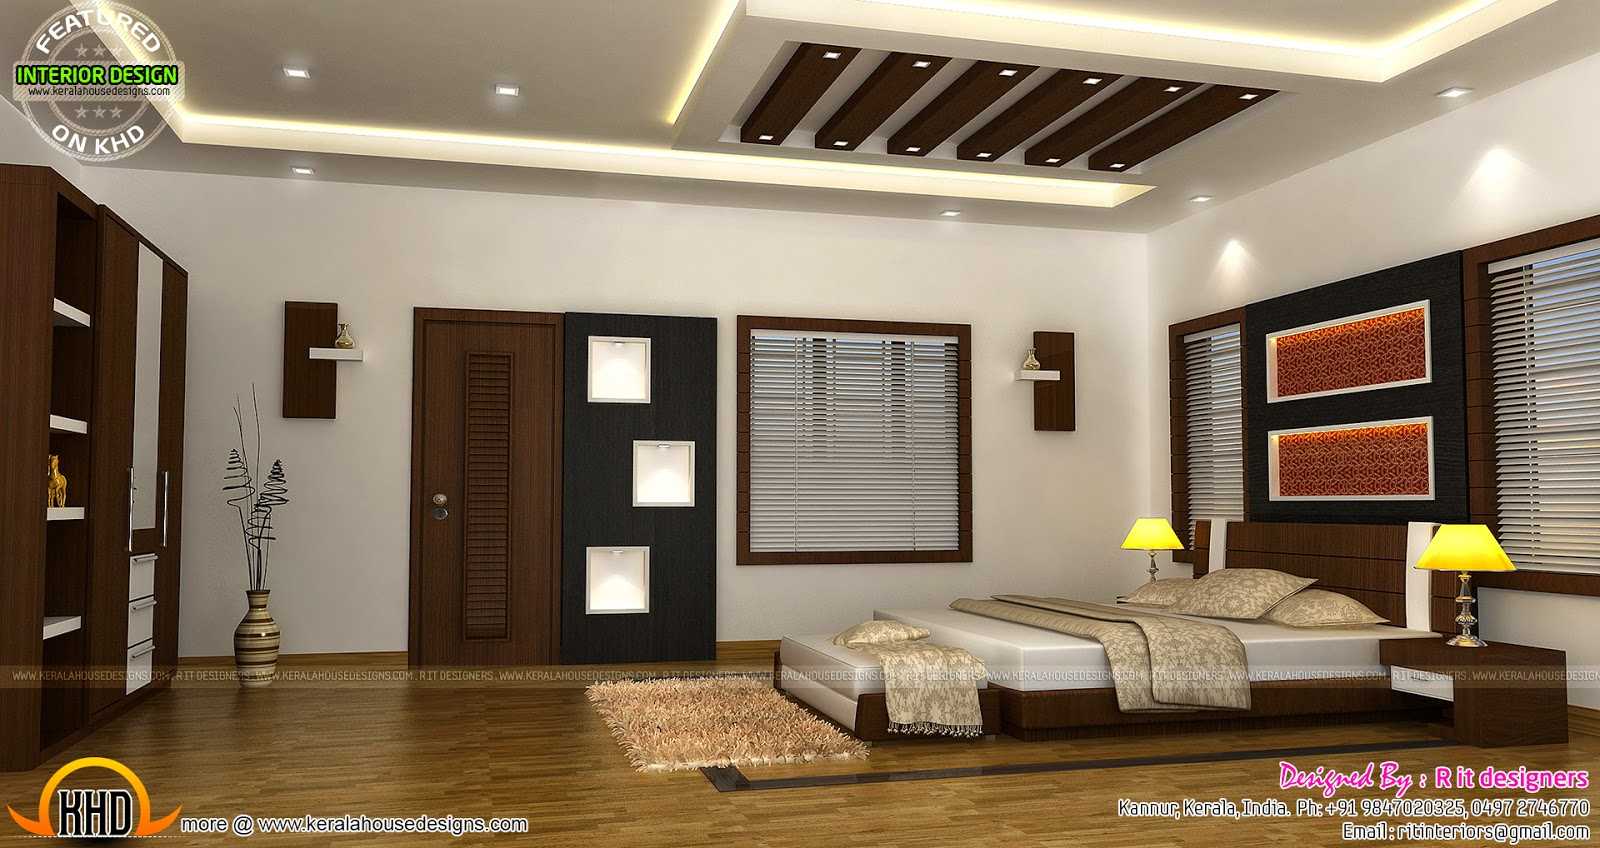 Bedroom Interior Design Bedroom Interior Design With Cost  Kerala Home Design And Floor Plans